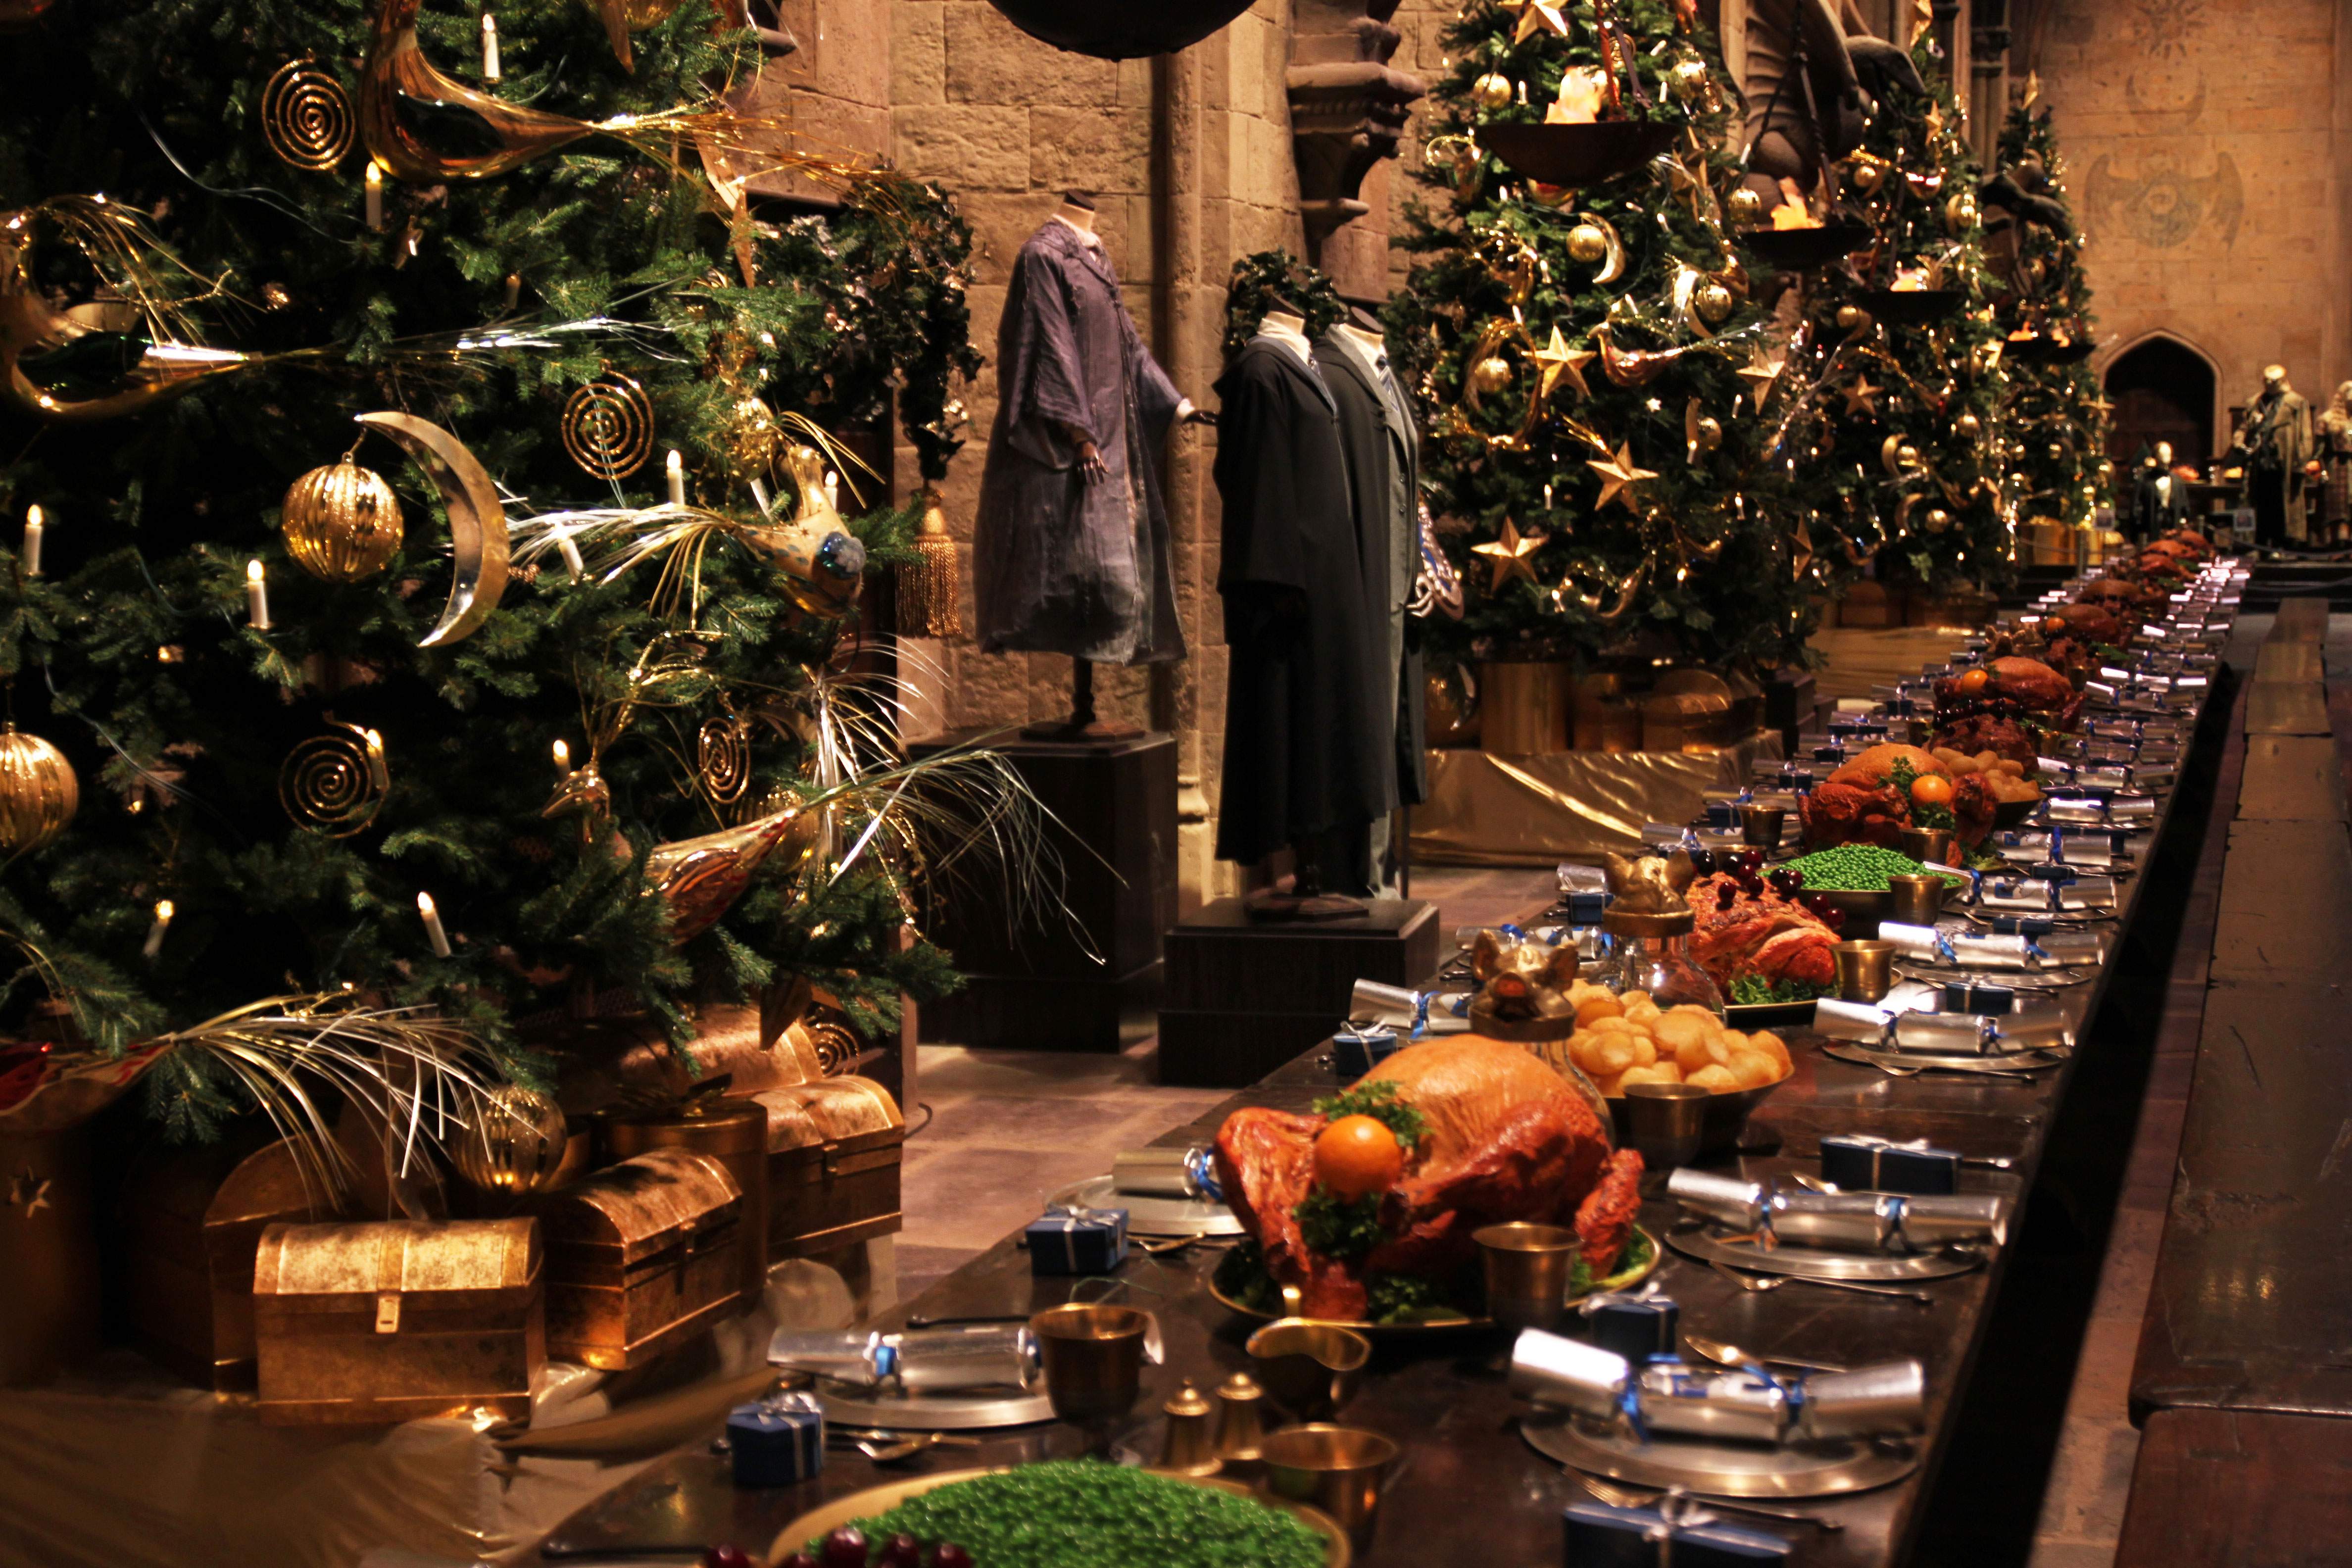 A feast made entirely of props